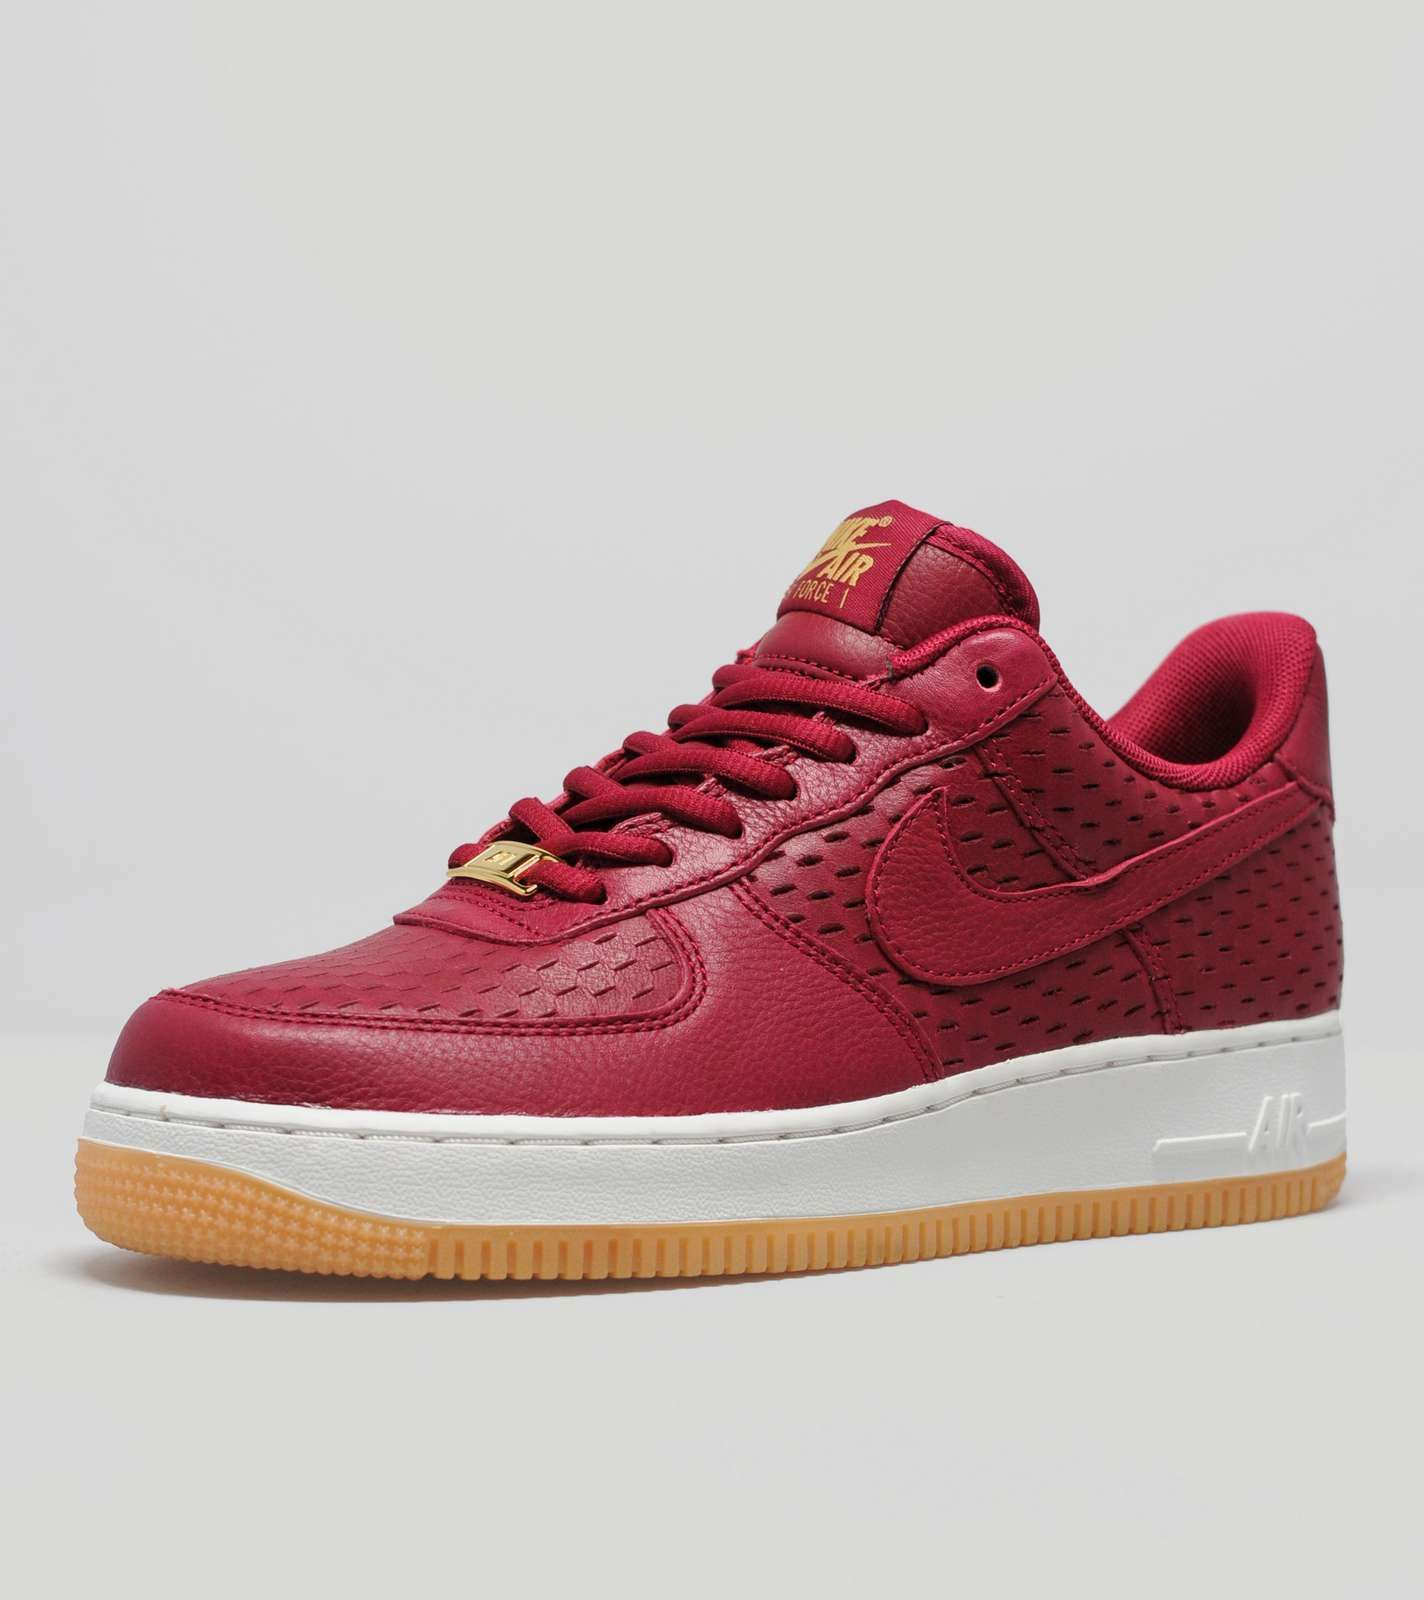 Nike Air Force 1 Pony Fur Pack | Sport shoes | Pinterest | Nike air force,  Fur and Trainers